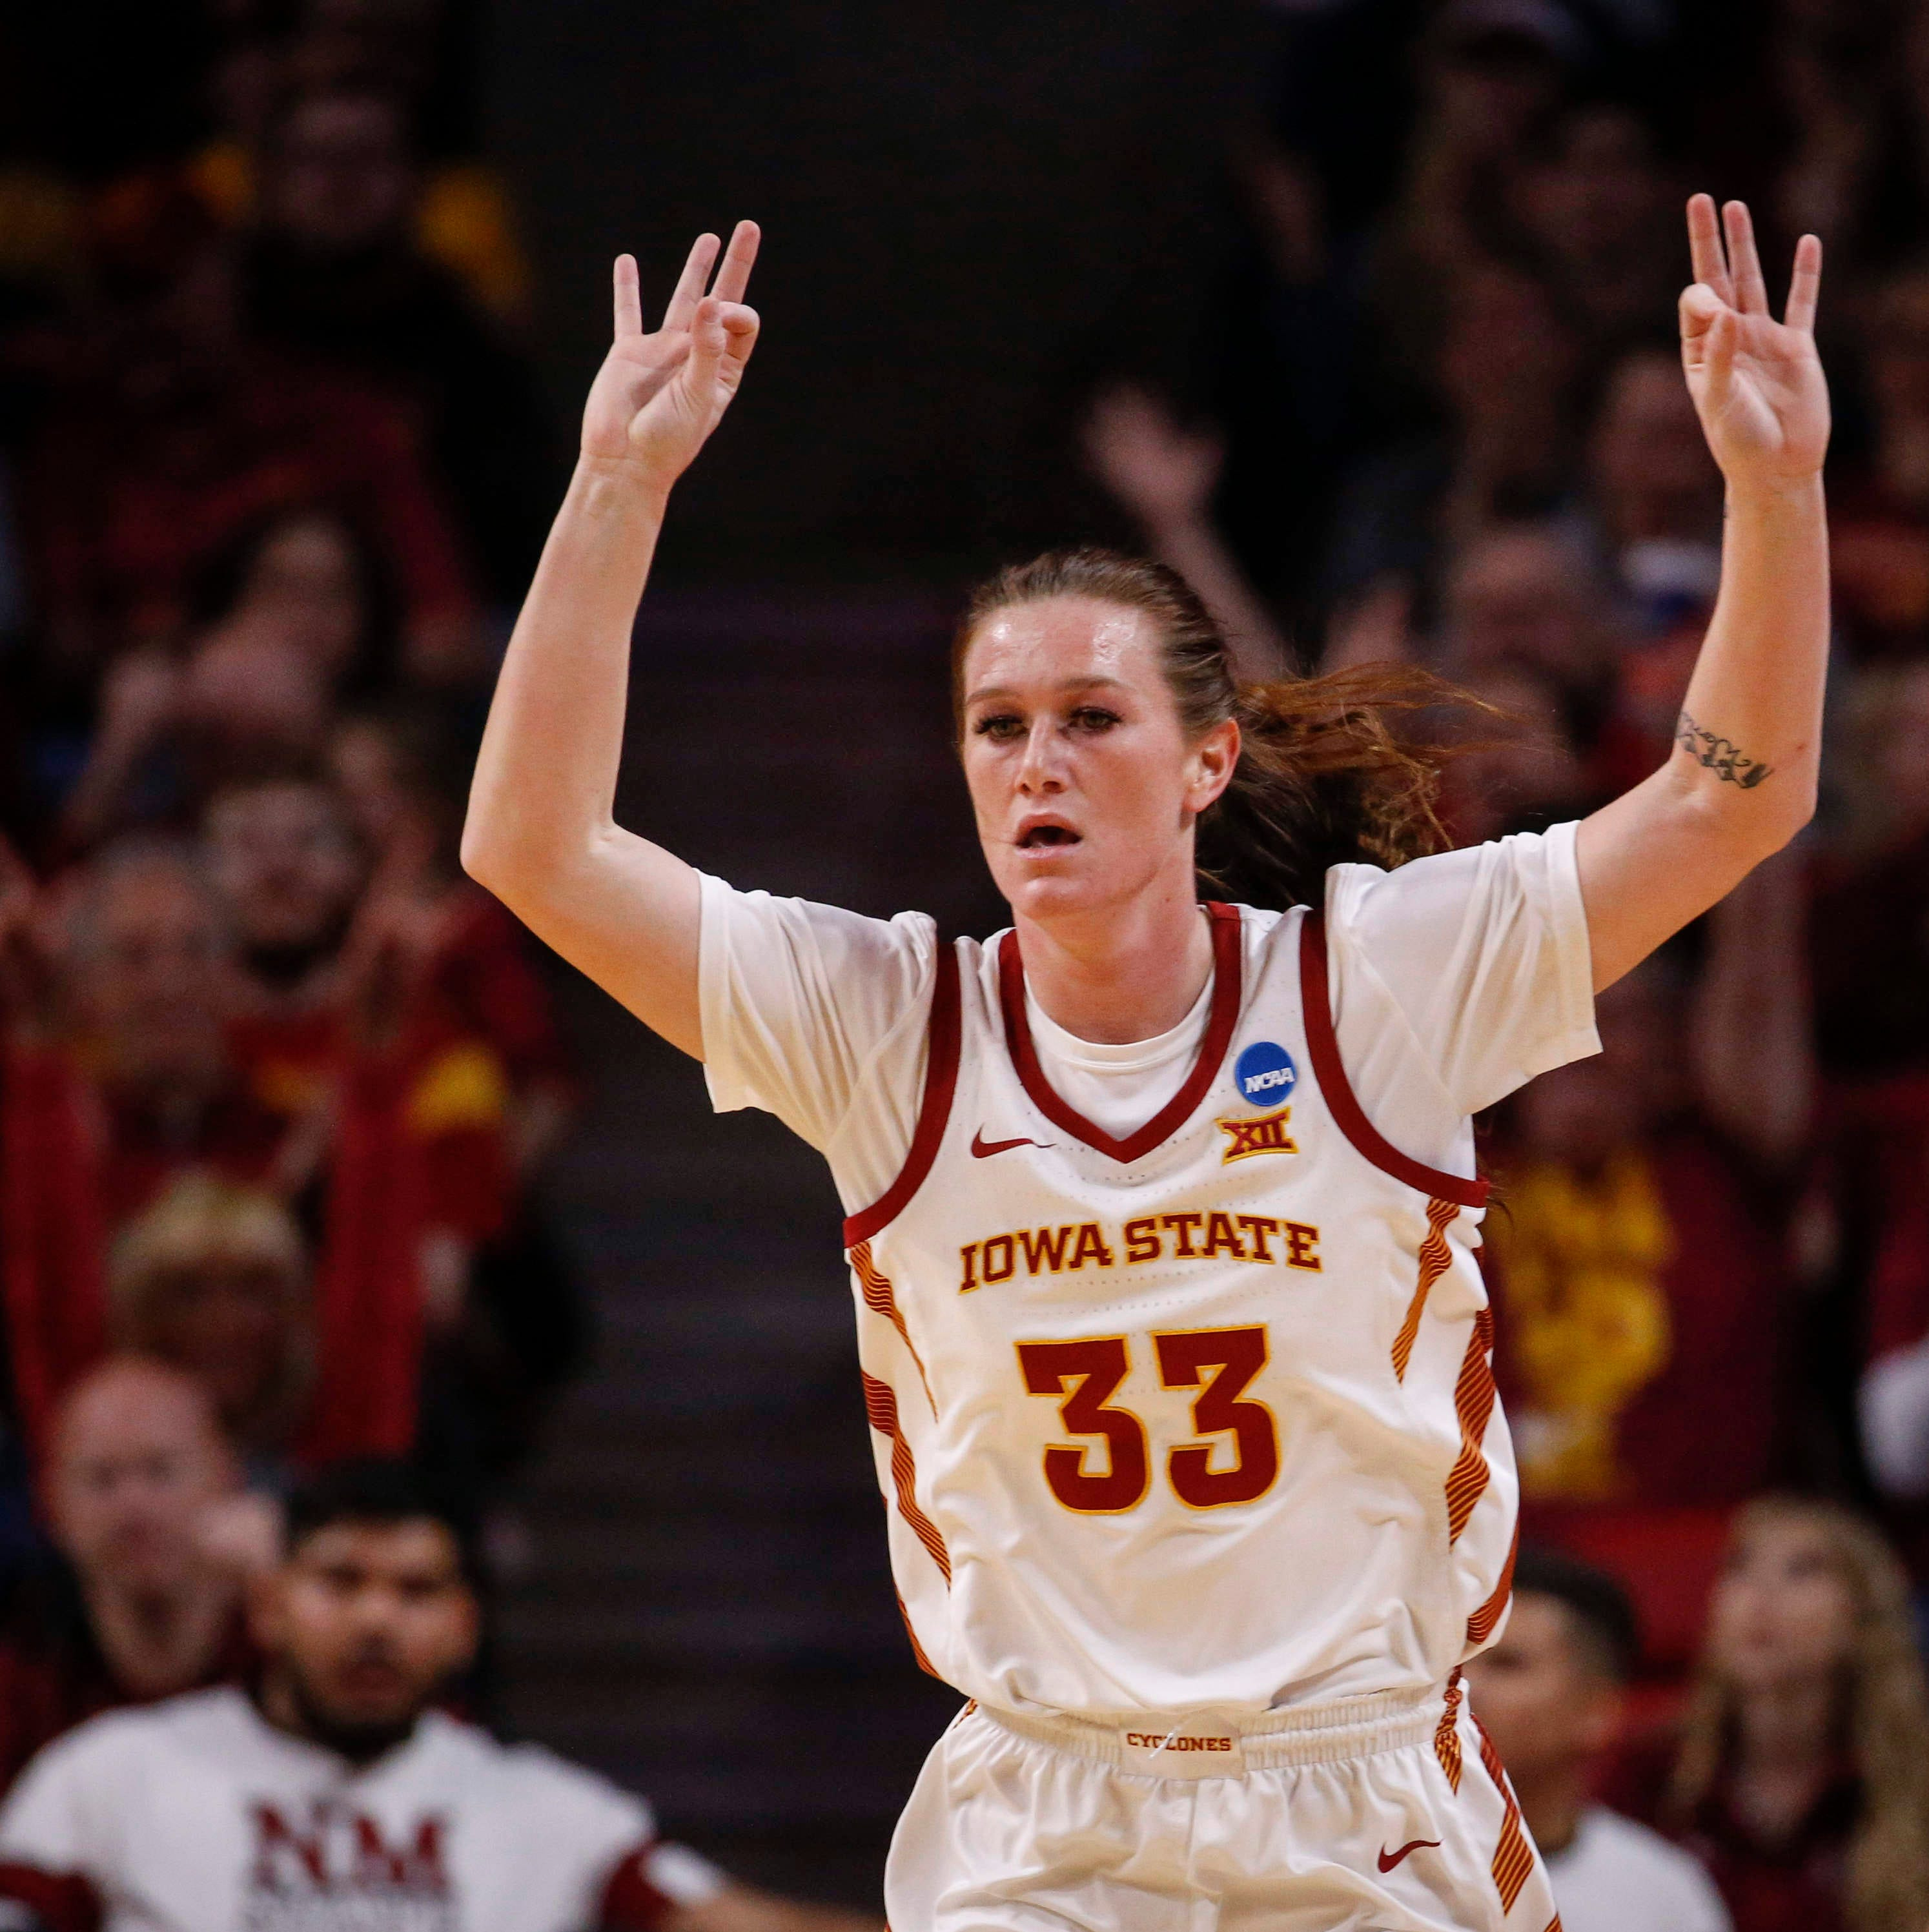 NCAA Tournament: Iowa State women cruise past New Mexico State in first round